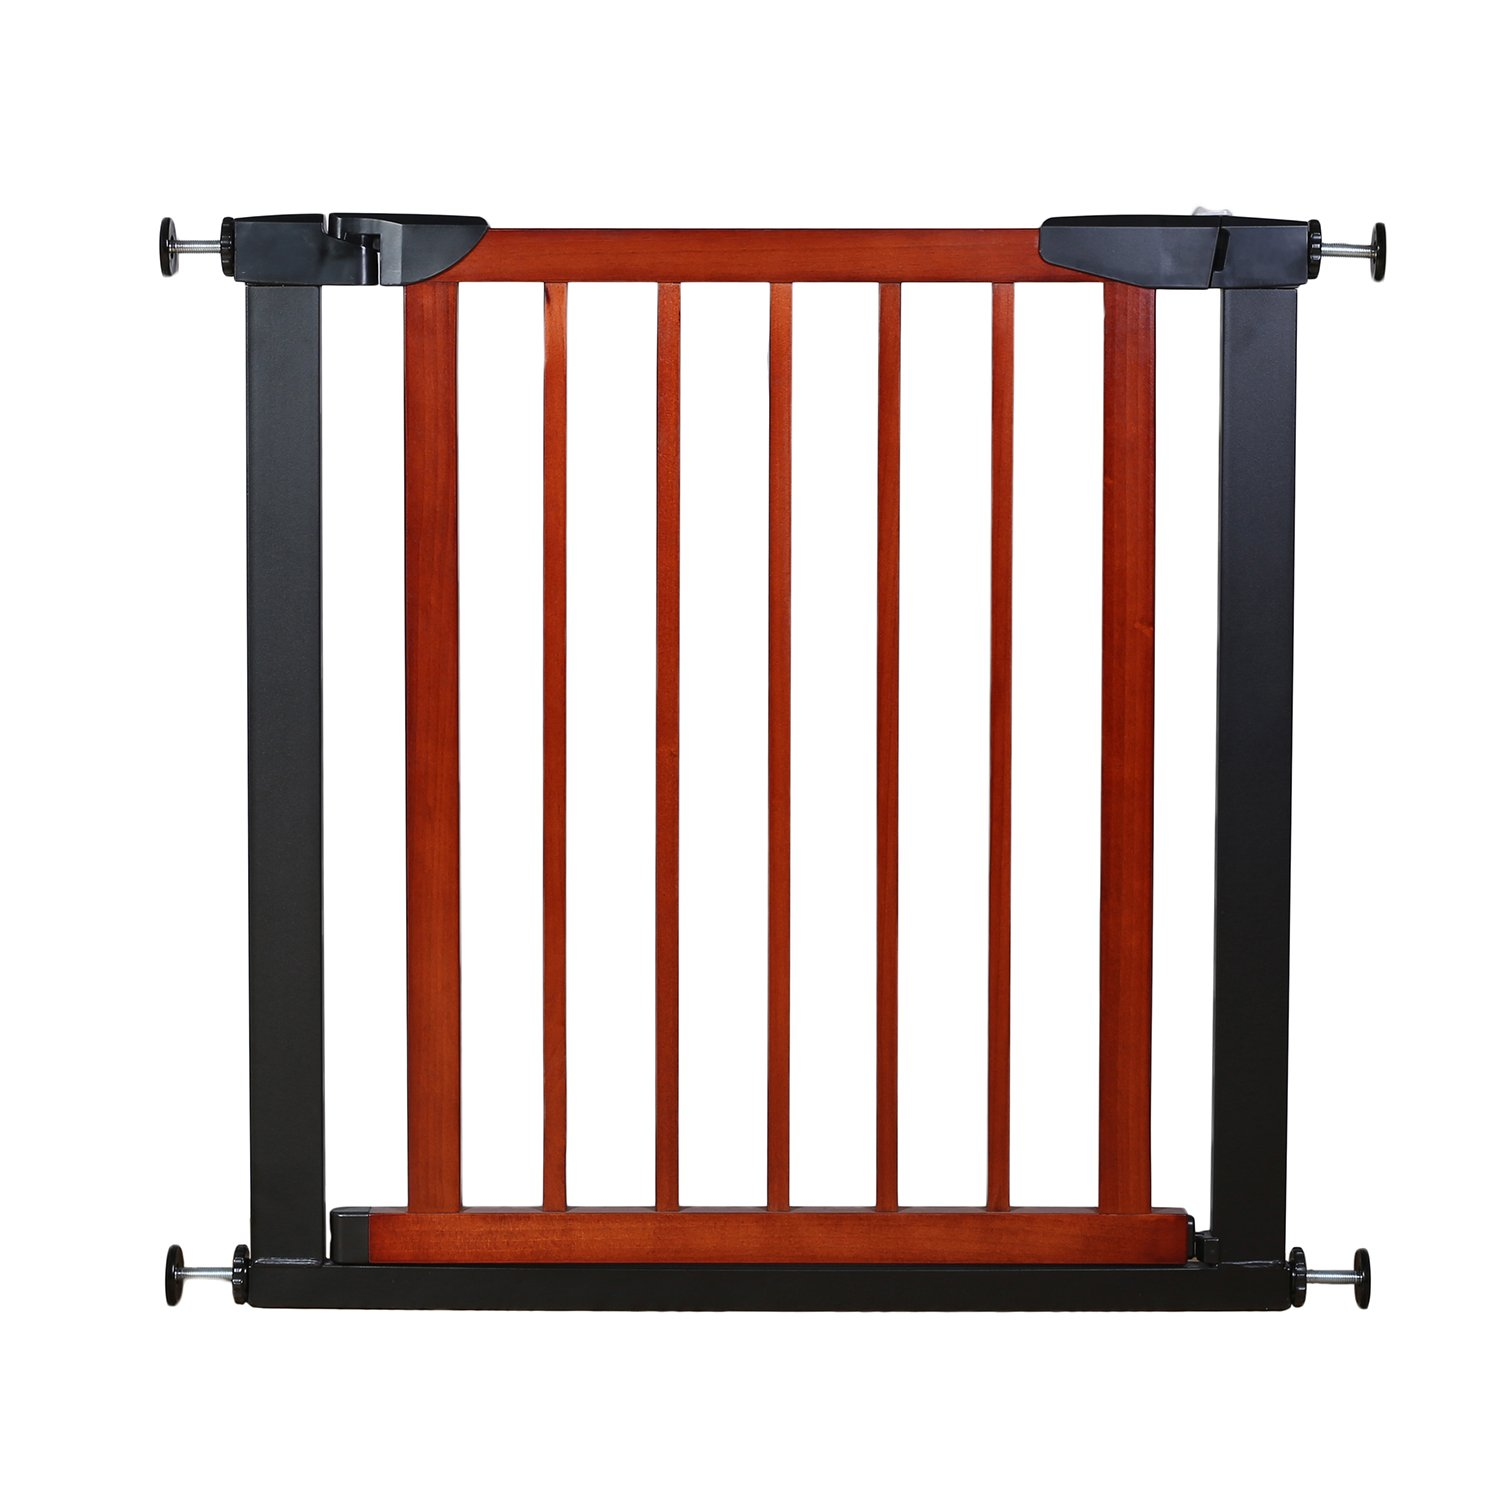 Fairy Baby Infant Decorative Wood & Metal Extra Wide Walk Thru Gate,Fit Spaces 54.33''-57.09'' by Fairy Baby (Image #1)